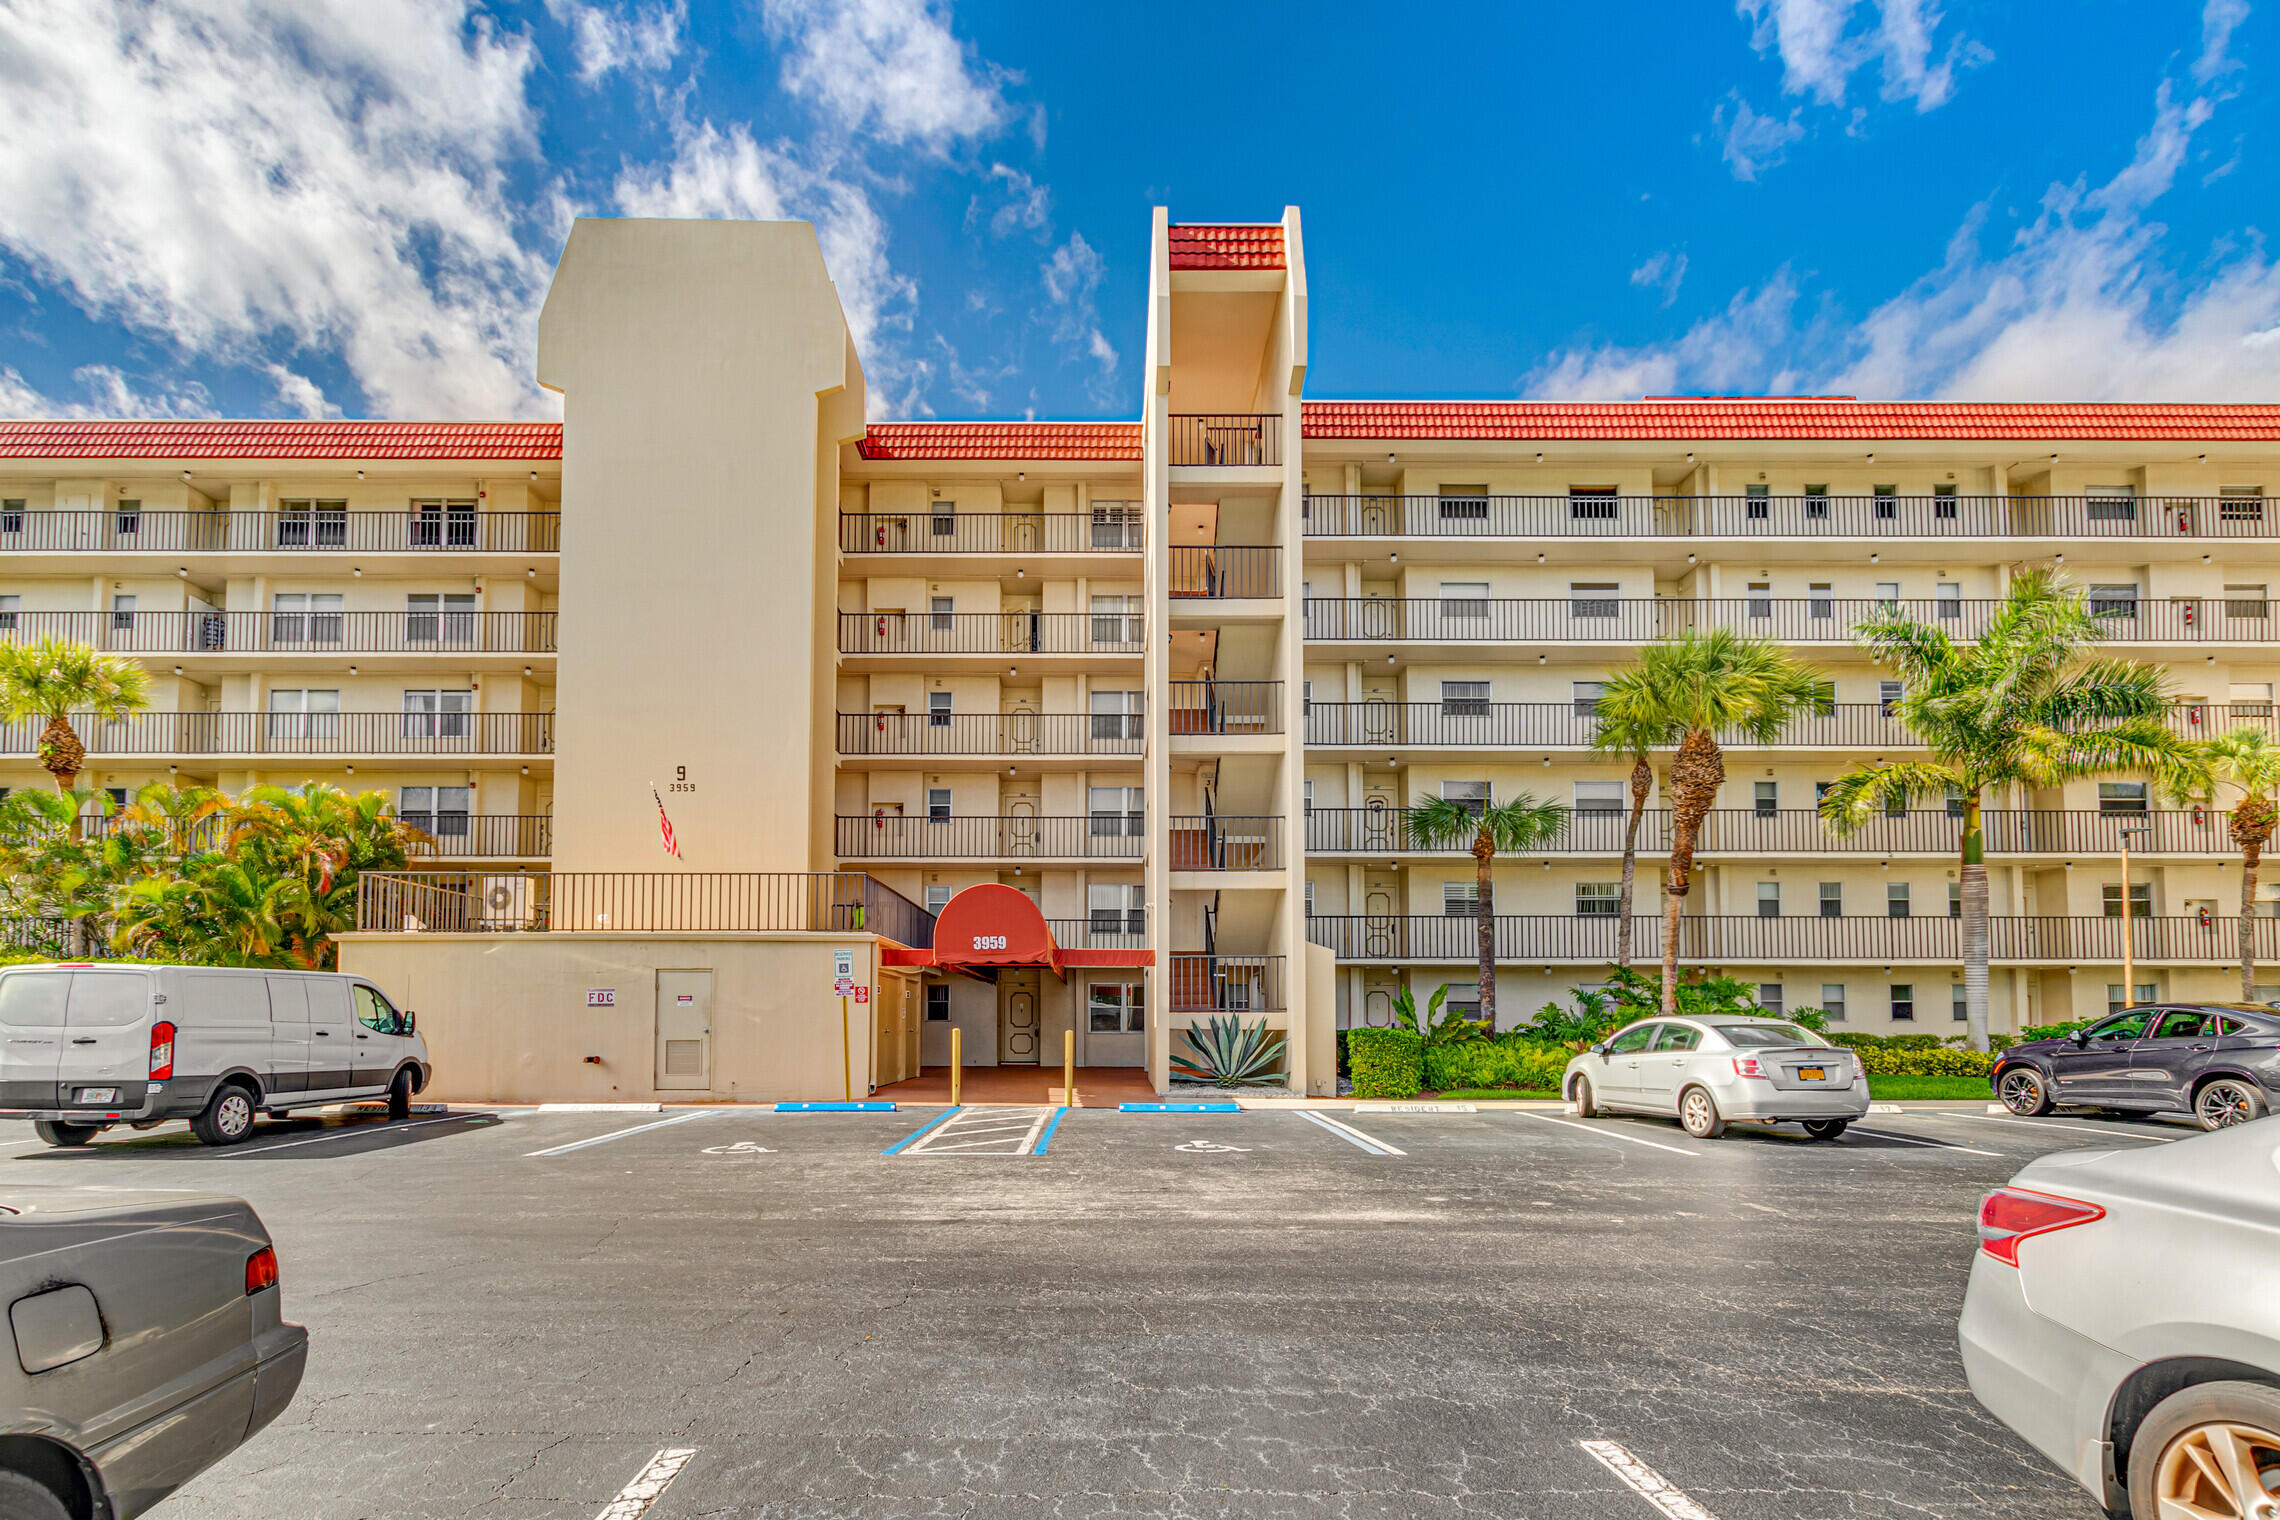 3959 Via Poinciana #106 - 33467 - FL - Lake Worth